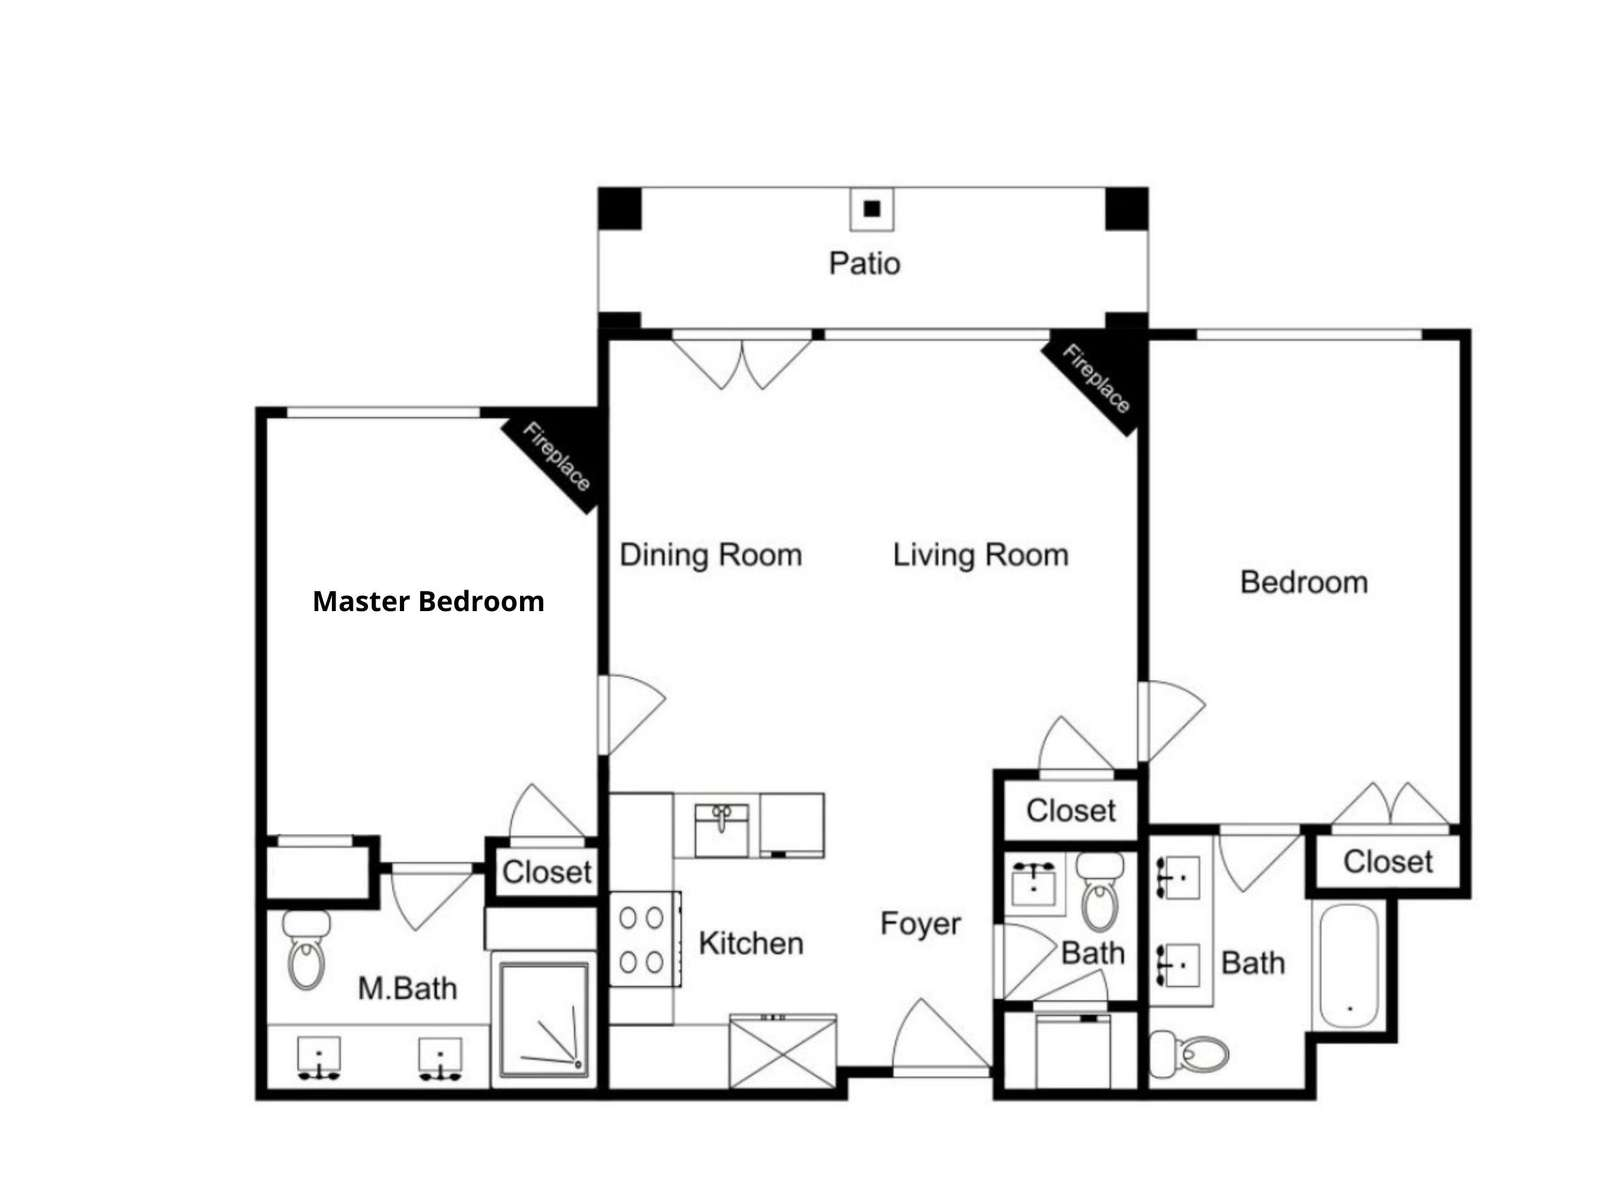 Floorplan - the private hot tub is on the patio